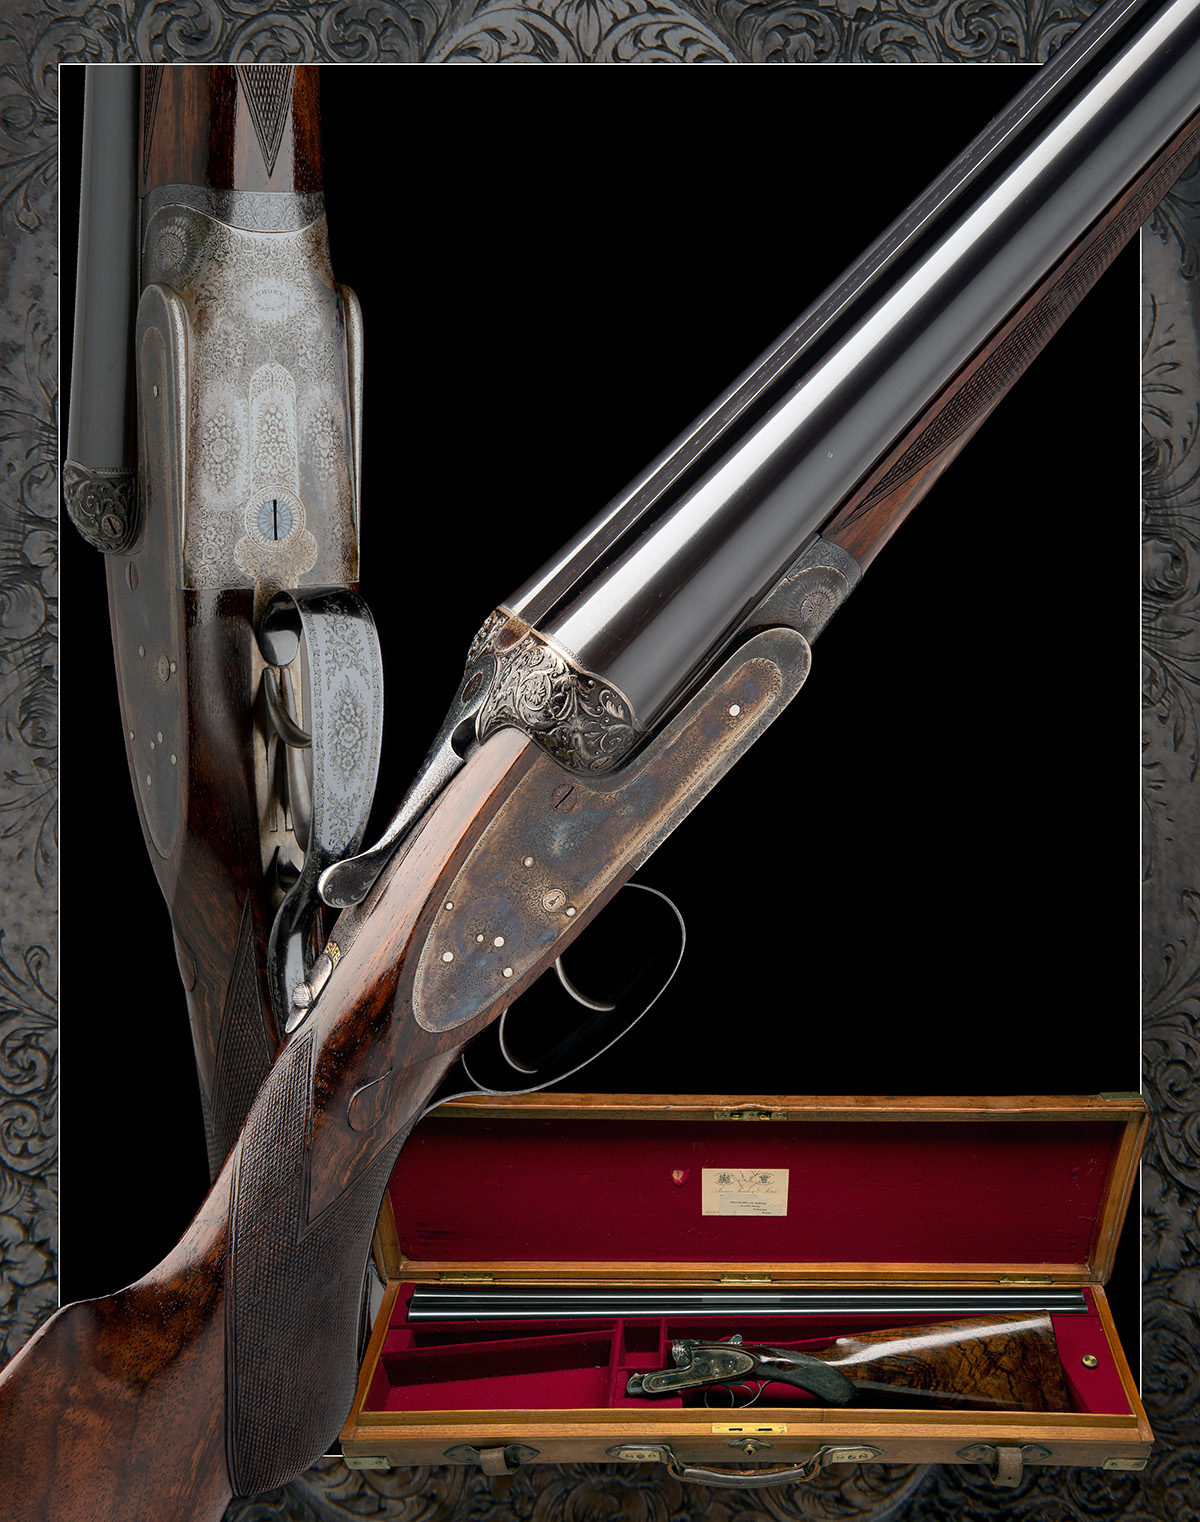 J. PURDEY & SONS A FINE 12-BORE (3IN.) SELF-OPENING SIDELOCK EJECTOR WILDFOWLING GUN, serial no. - Image 11 of 11